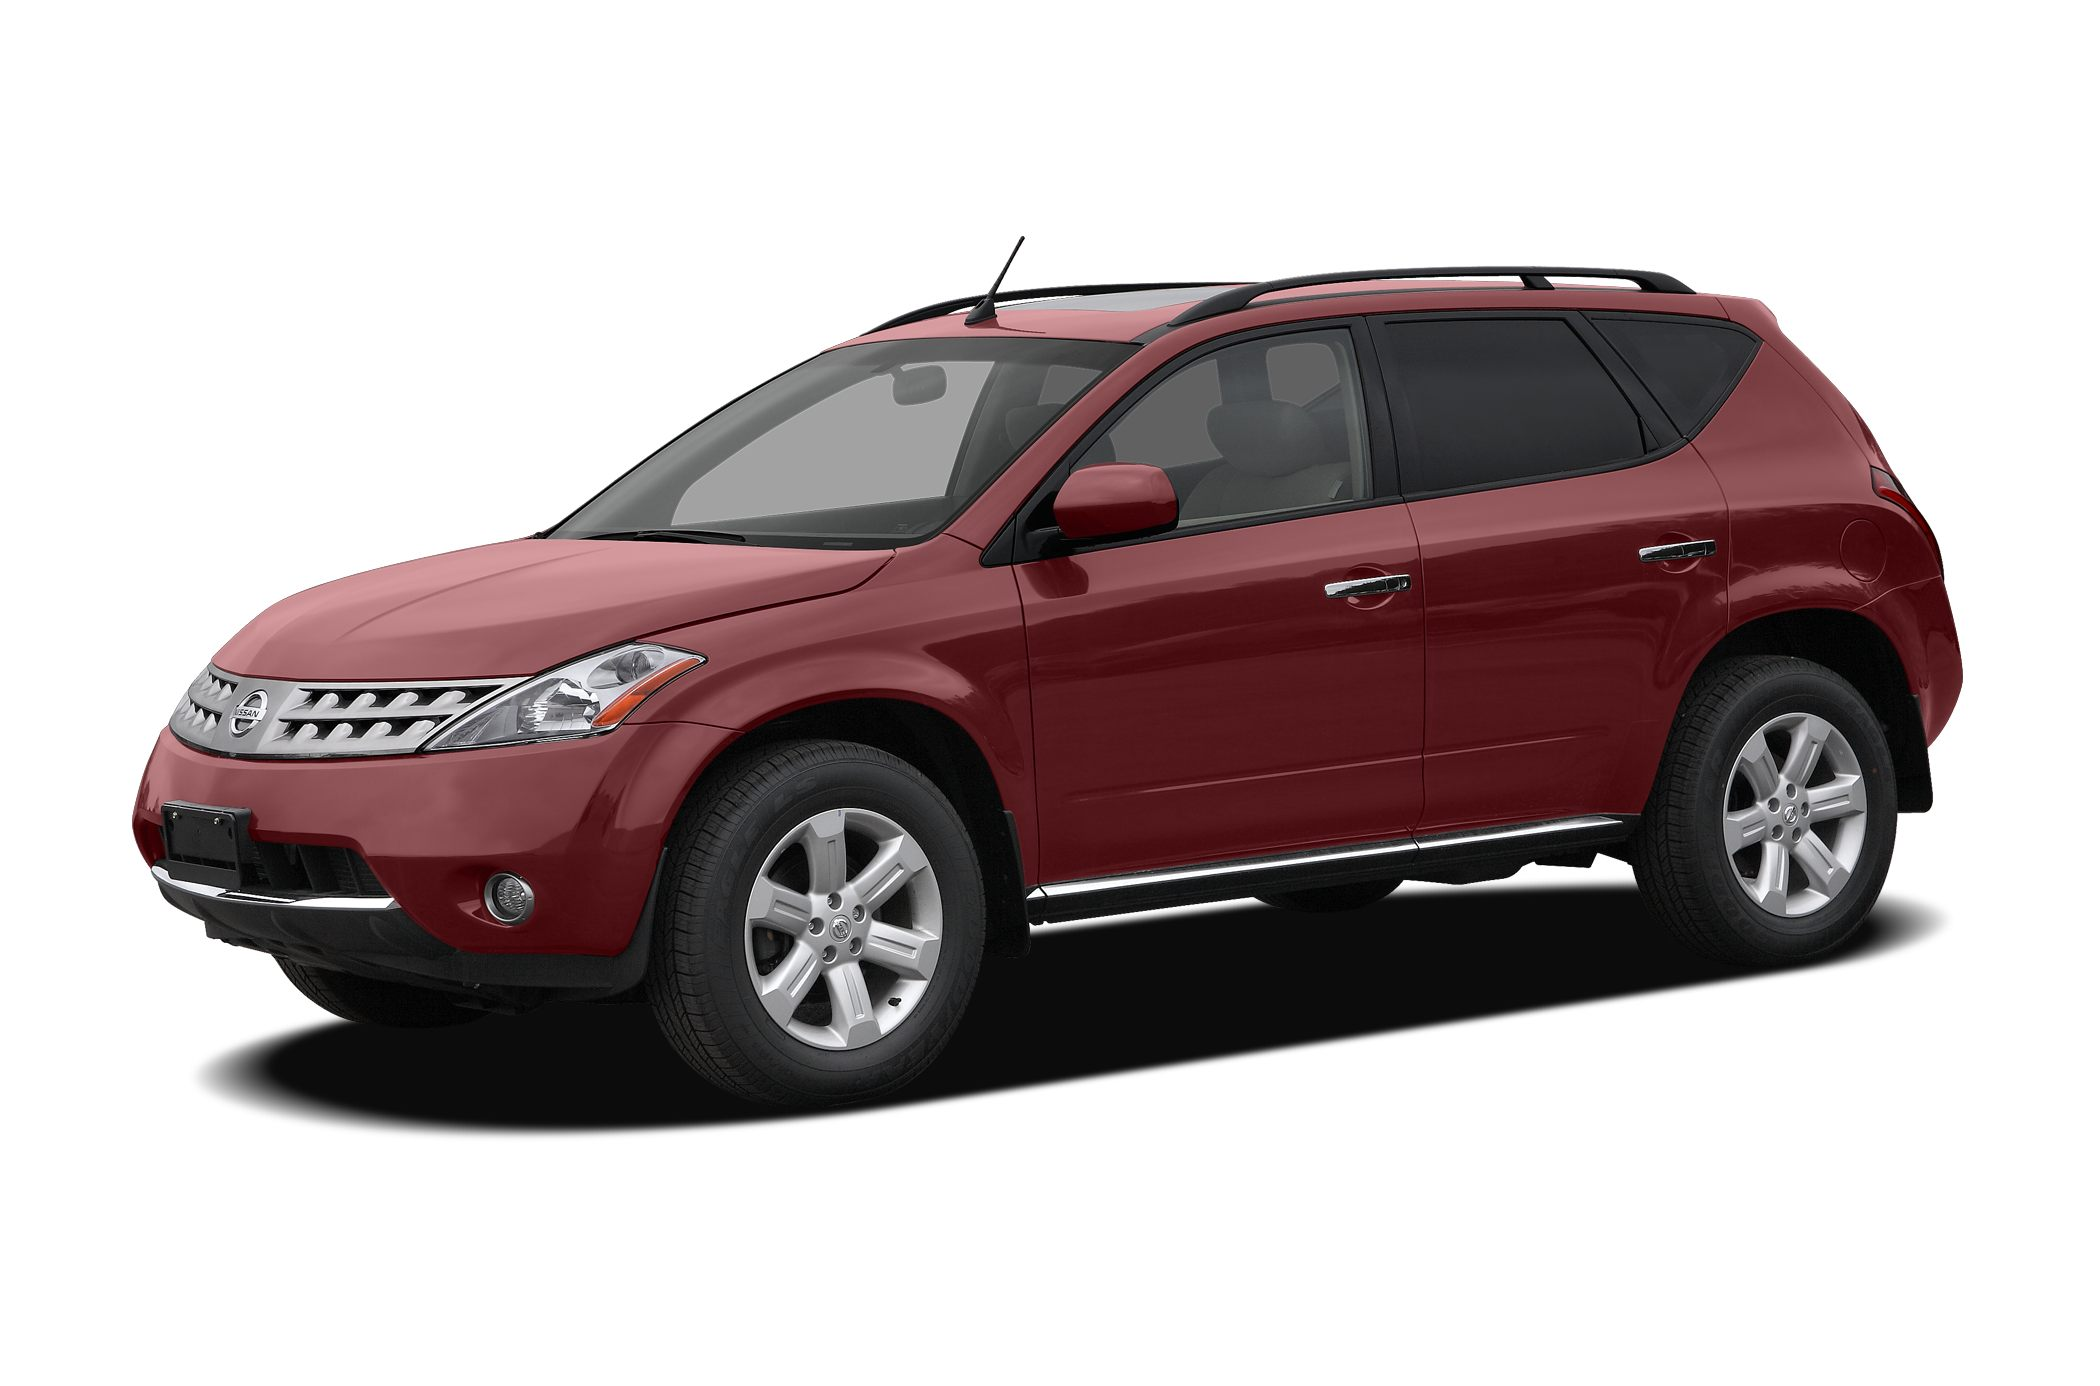 2006 Nissan Murano SL  WHEN IT COMES TO EXCELLENCE IN USED CAR SALES YOU KNOW YOURE AT STAR A